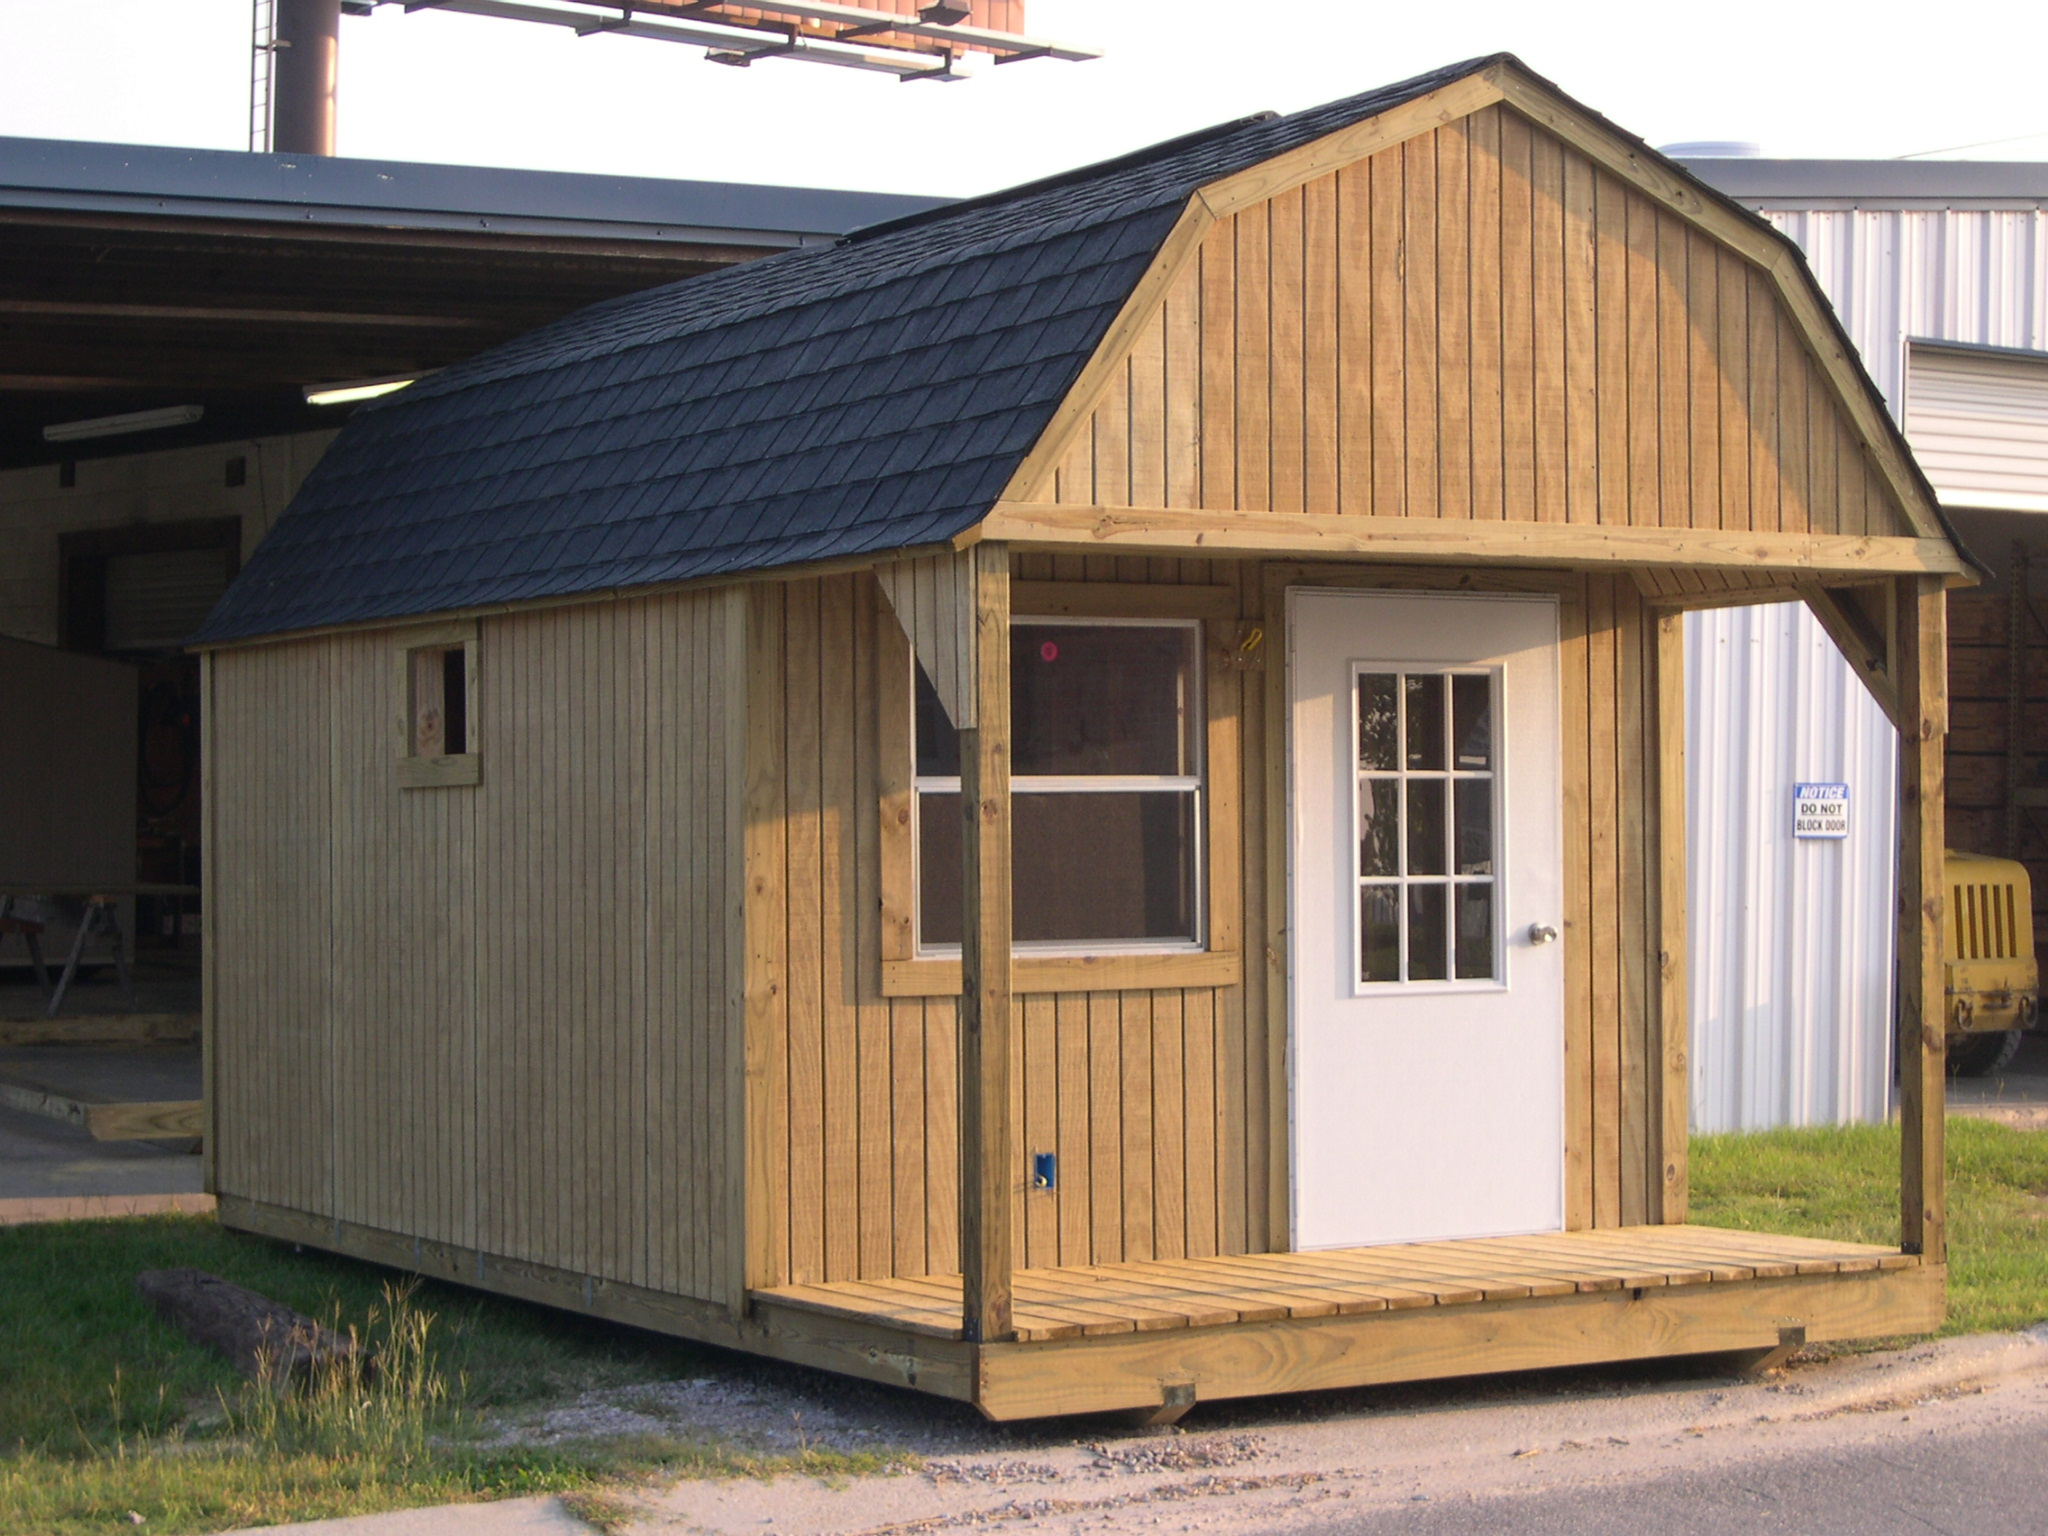 Woodwork building plans wood storage sheds pdf plans Barn plans and outbuildings